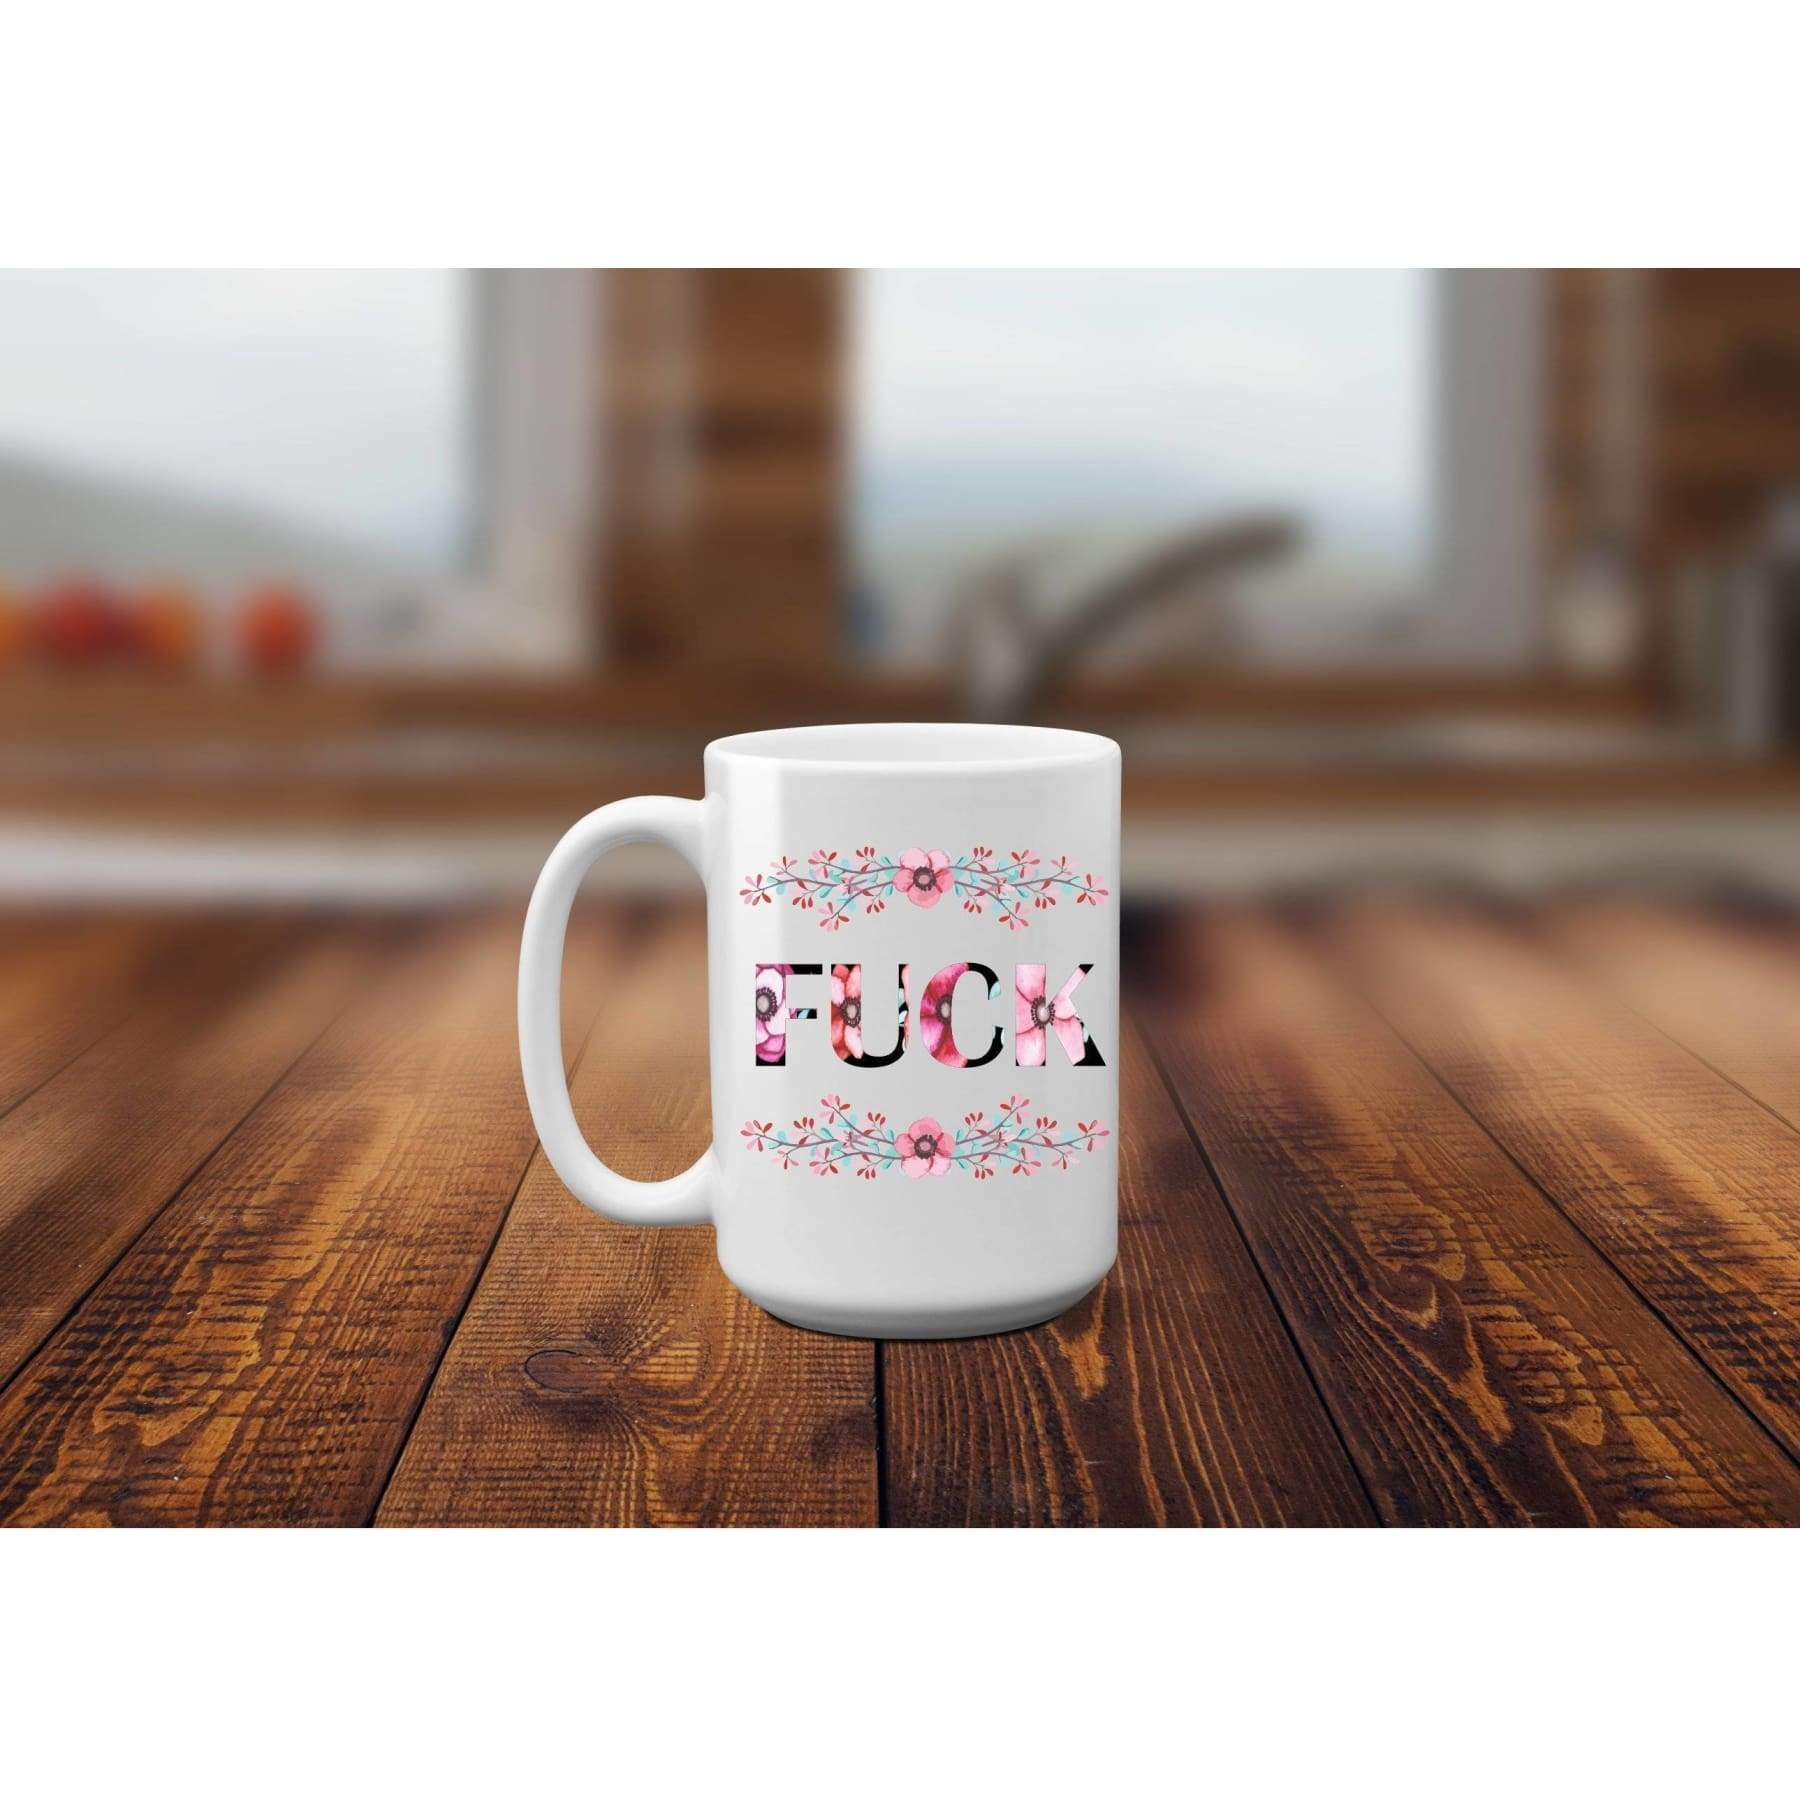 Rude Mugs - Fuck with Flowers  Mug.